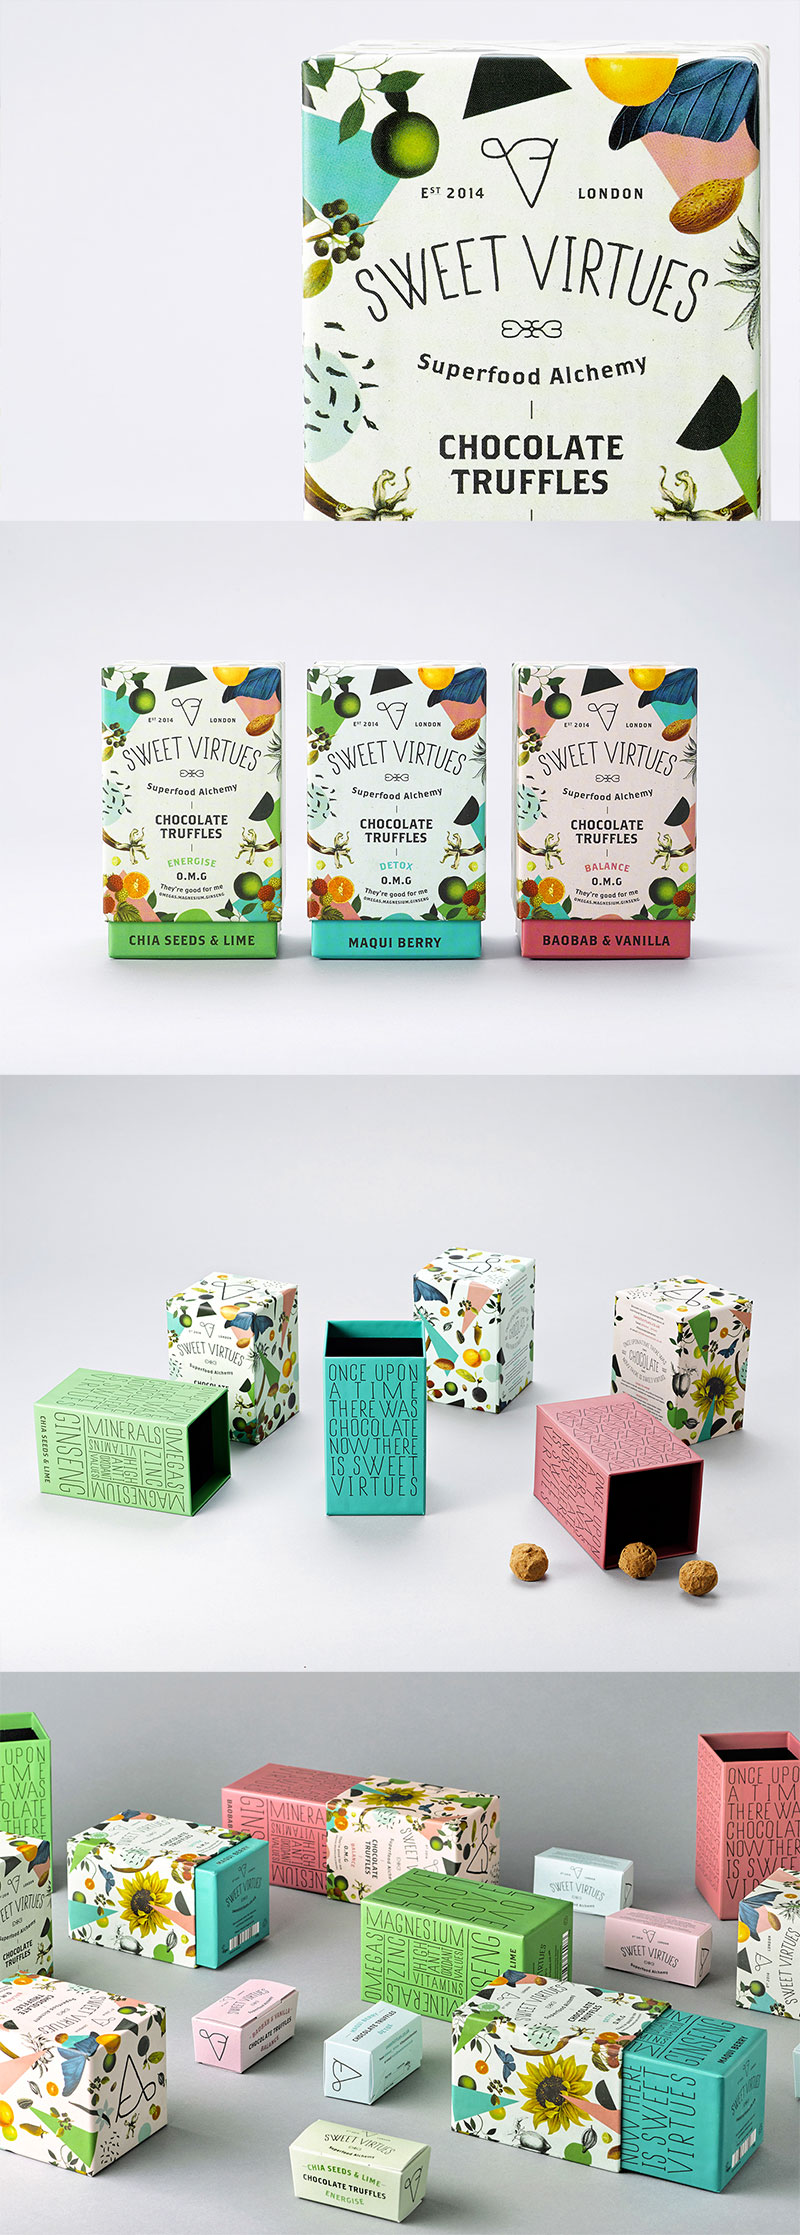 Sweet Virtues by IWANT design